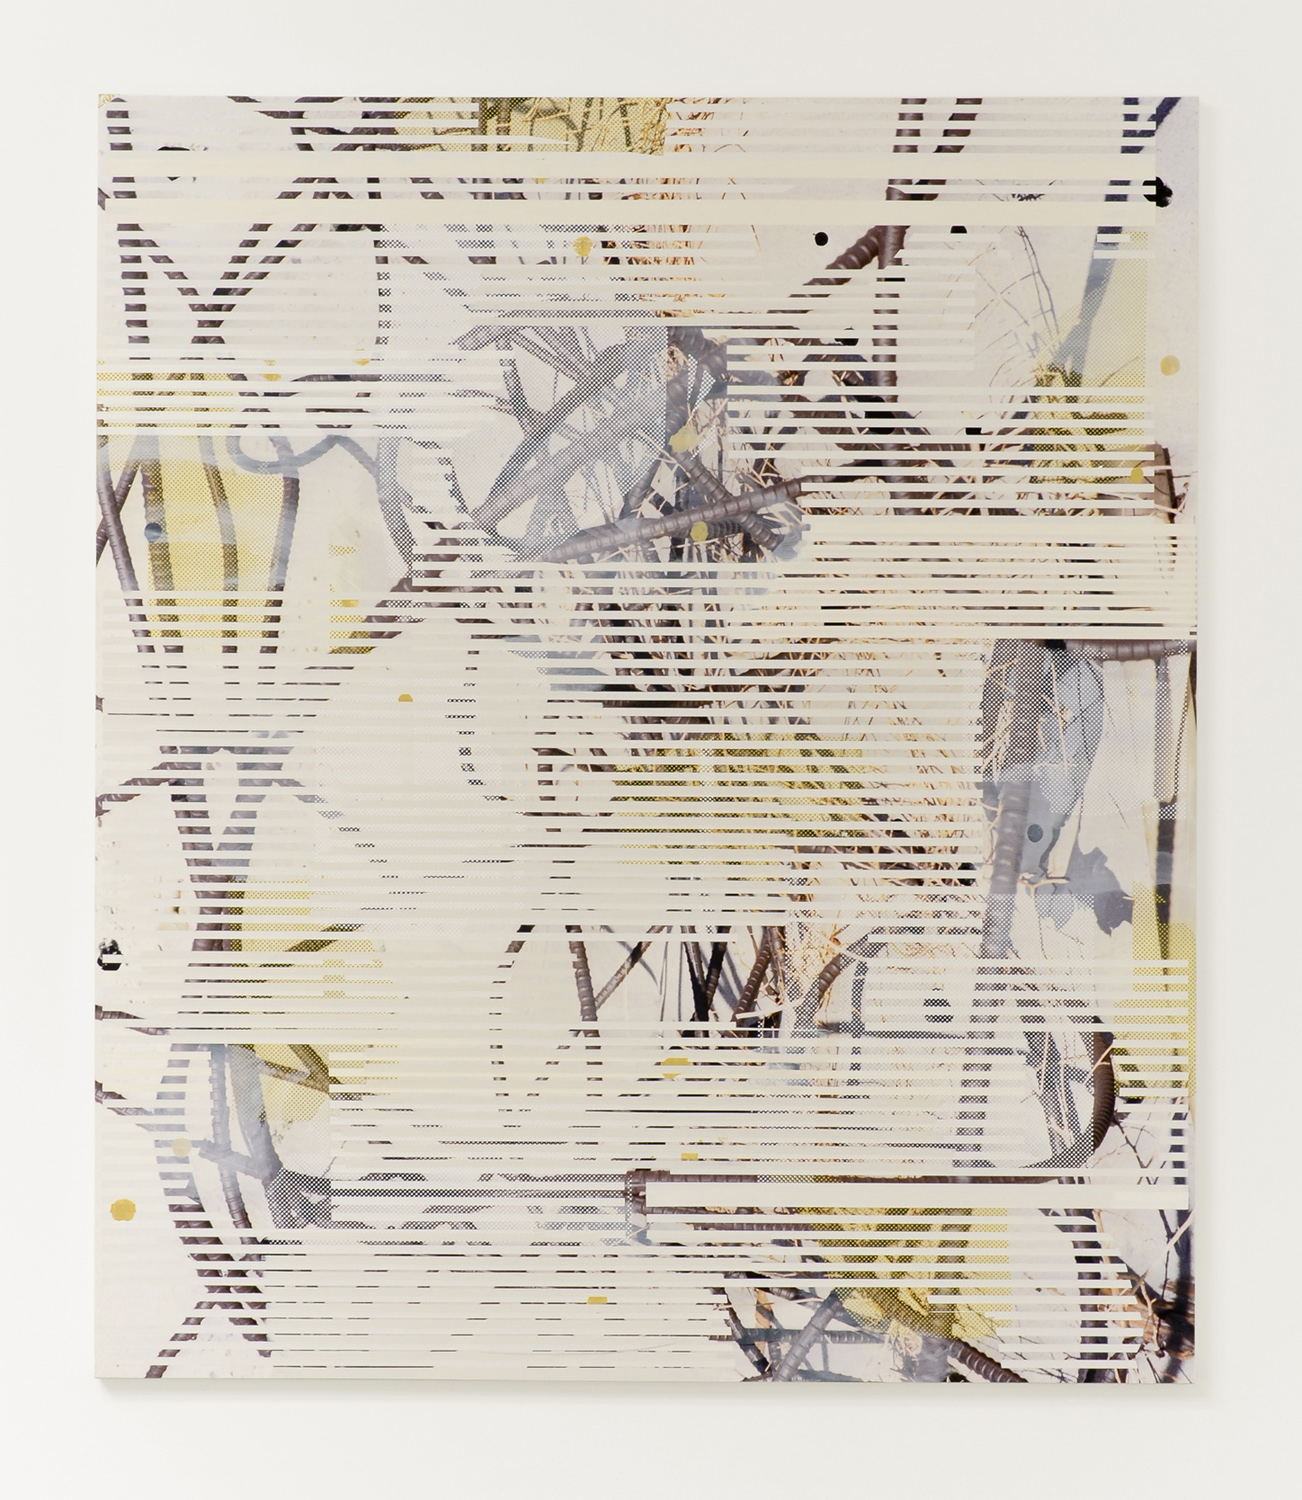 Untitled (rebar 2), 2013  Acrylic, oil and UV cured ink on canvas over panel  84 x 72 inches  213.36 x 182.88 cm